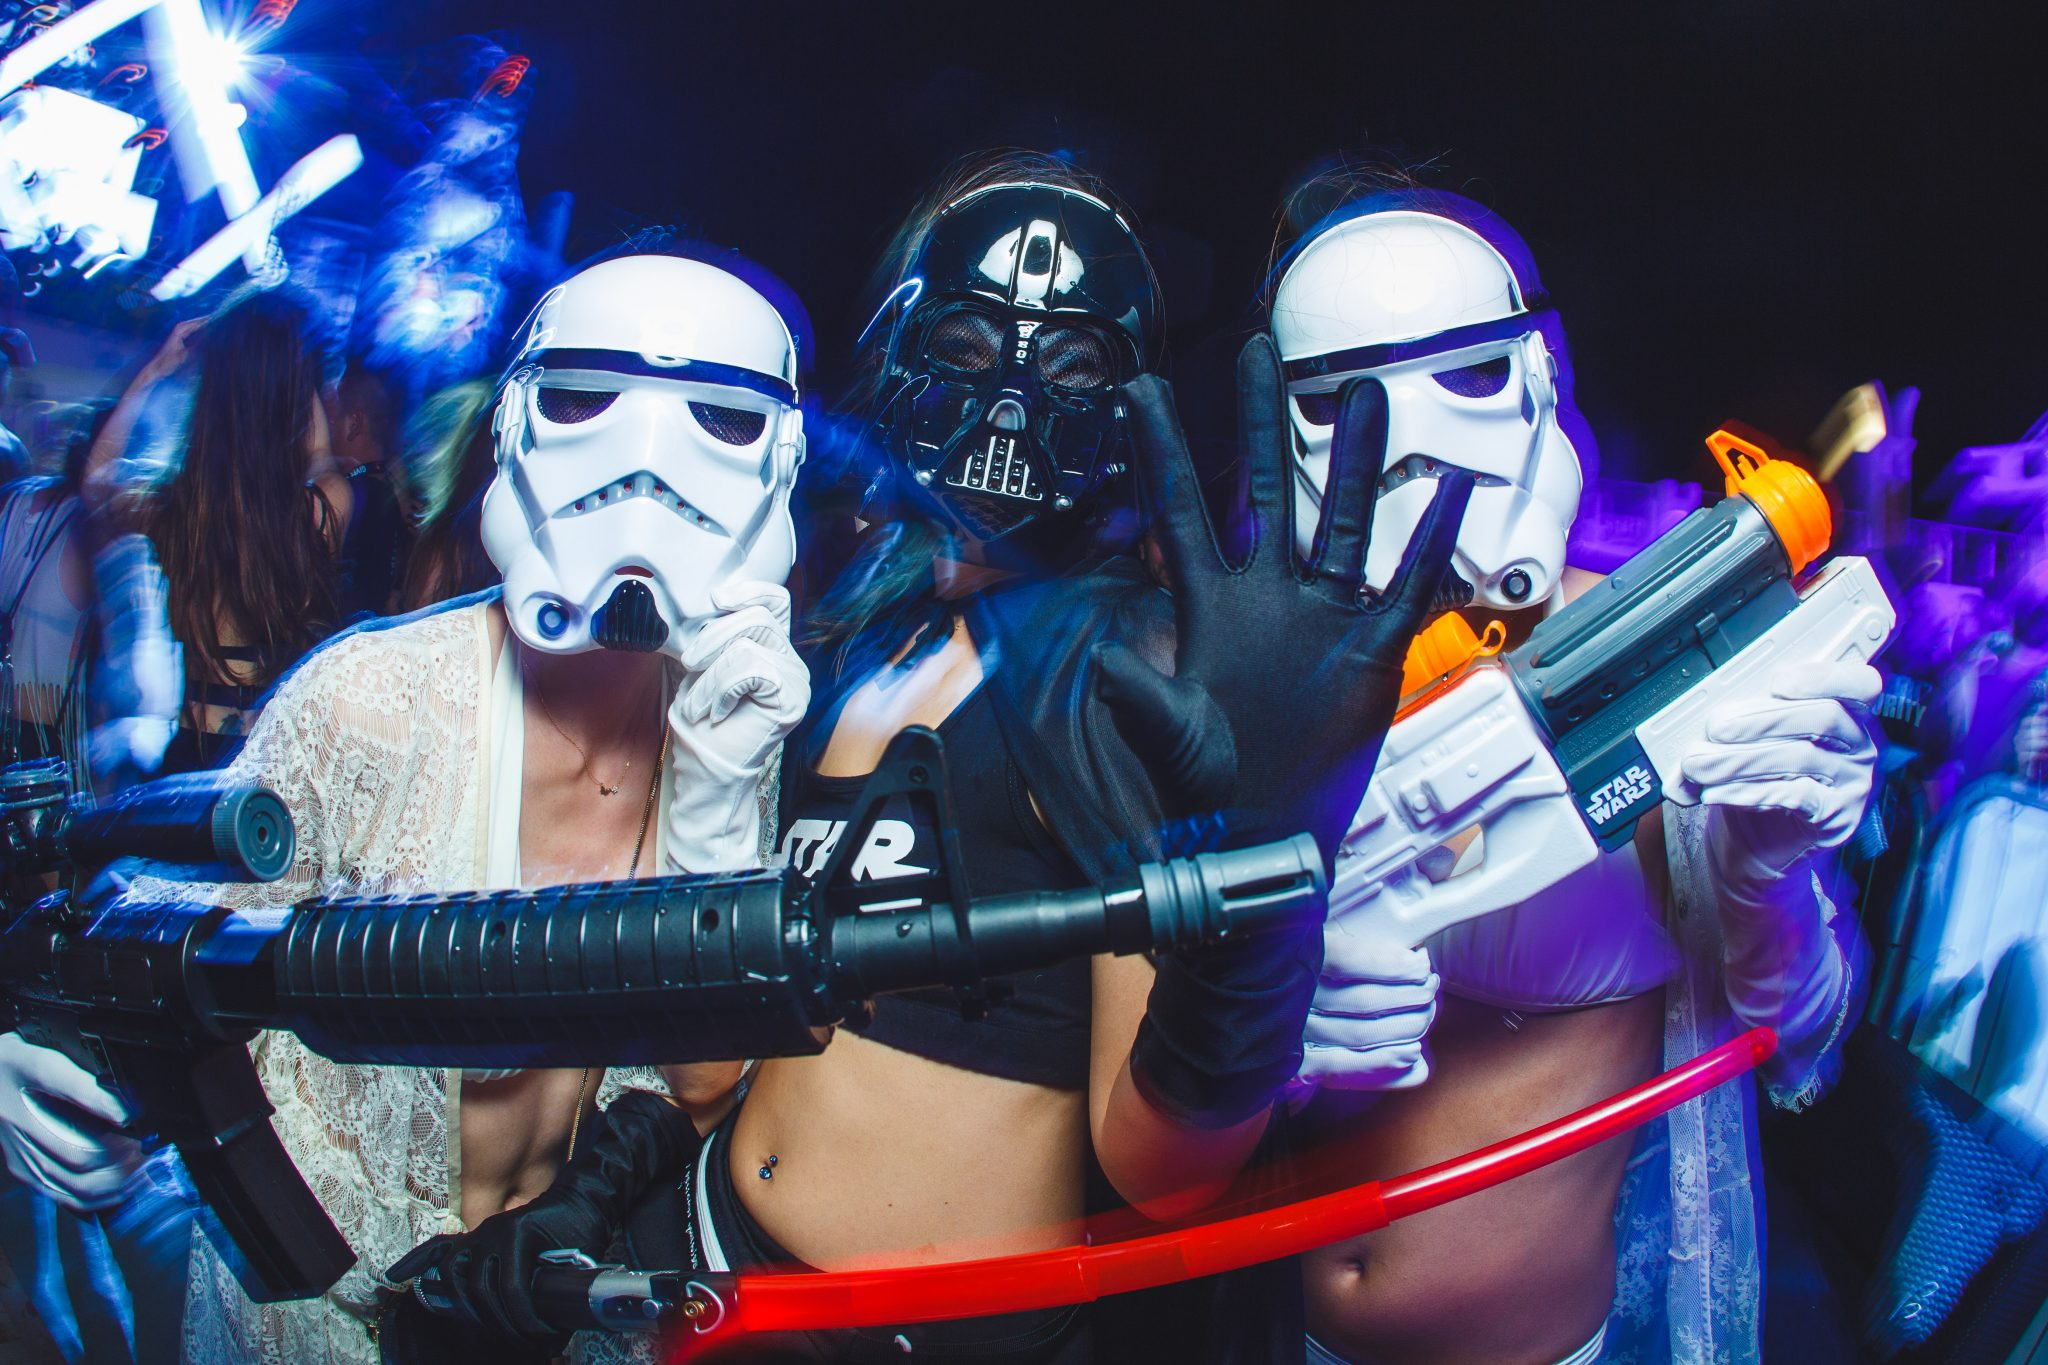 ITS2018: Star Wars themed party